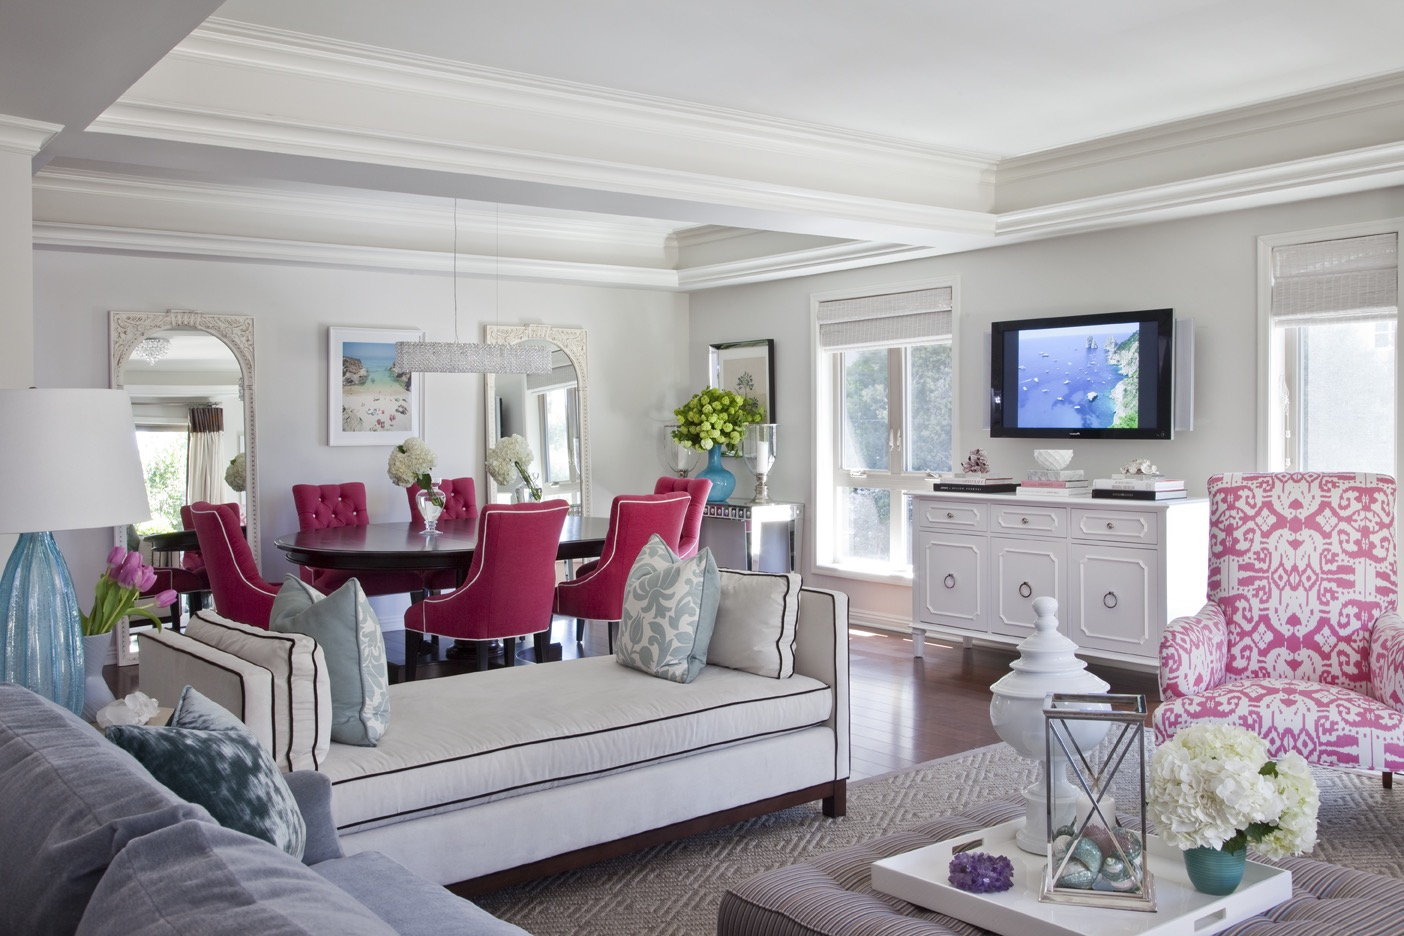 Incredible White Living And Dining Area With Raspberry Accents (View 5 of 34)